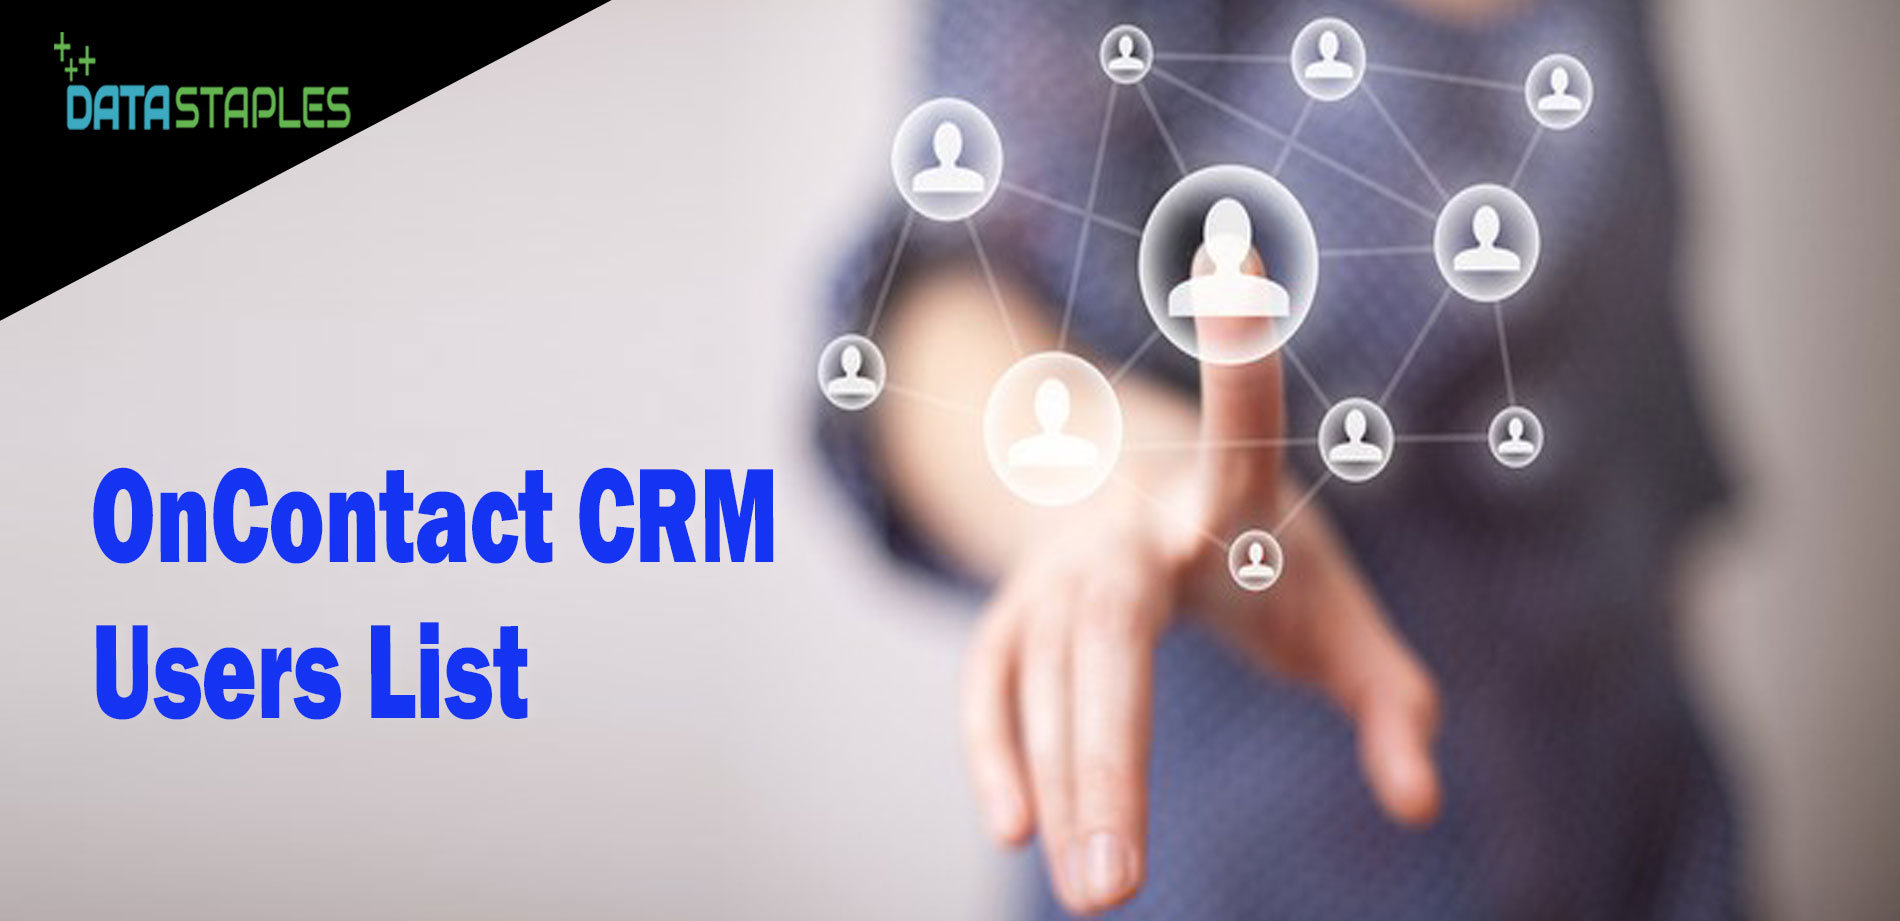 OnContact CRM Users Mailing List | DataStaples